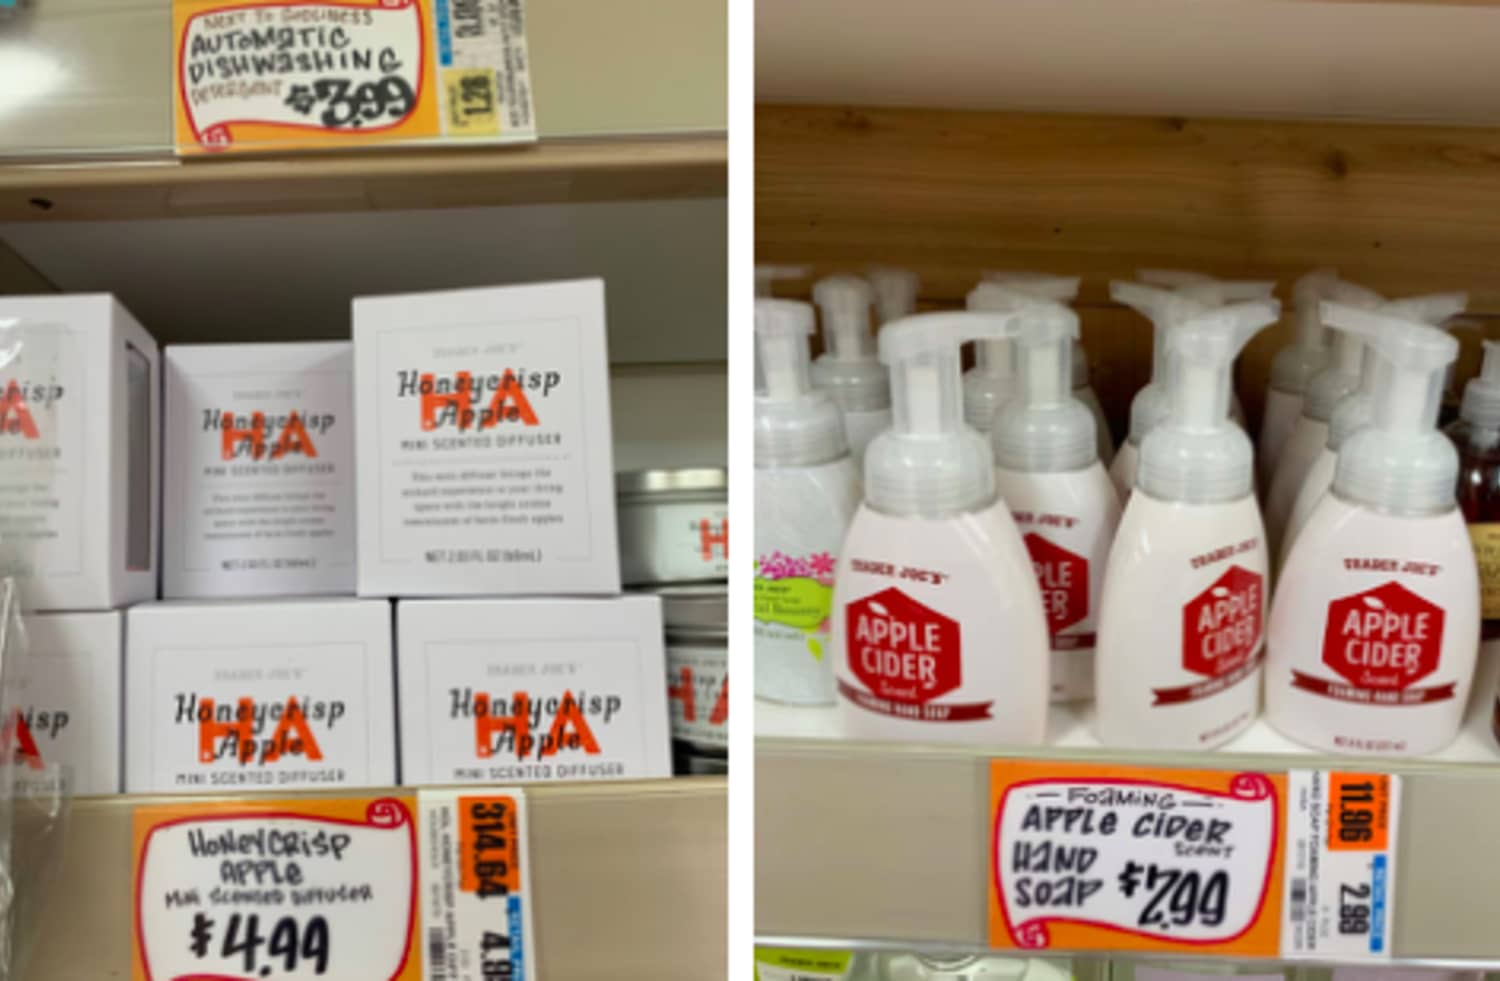 The Best Trader Joe's Fall Finds (Beyond Groceries) for $5 or Less